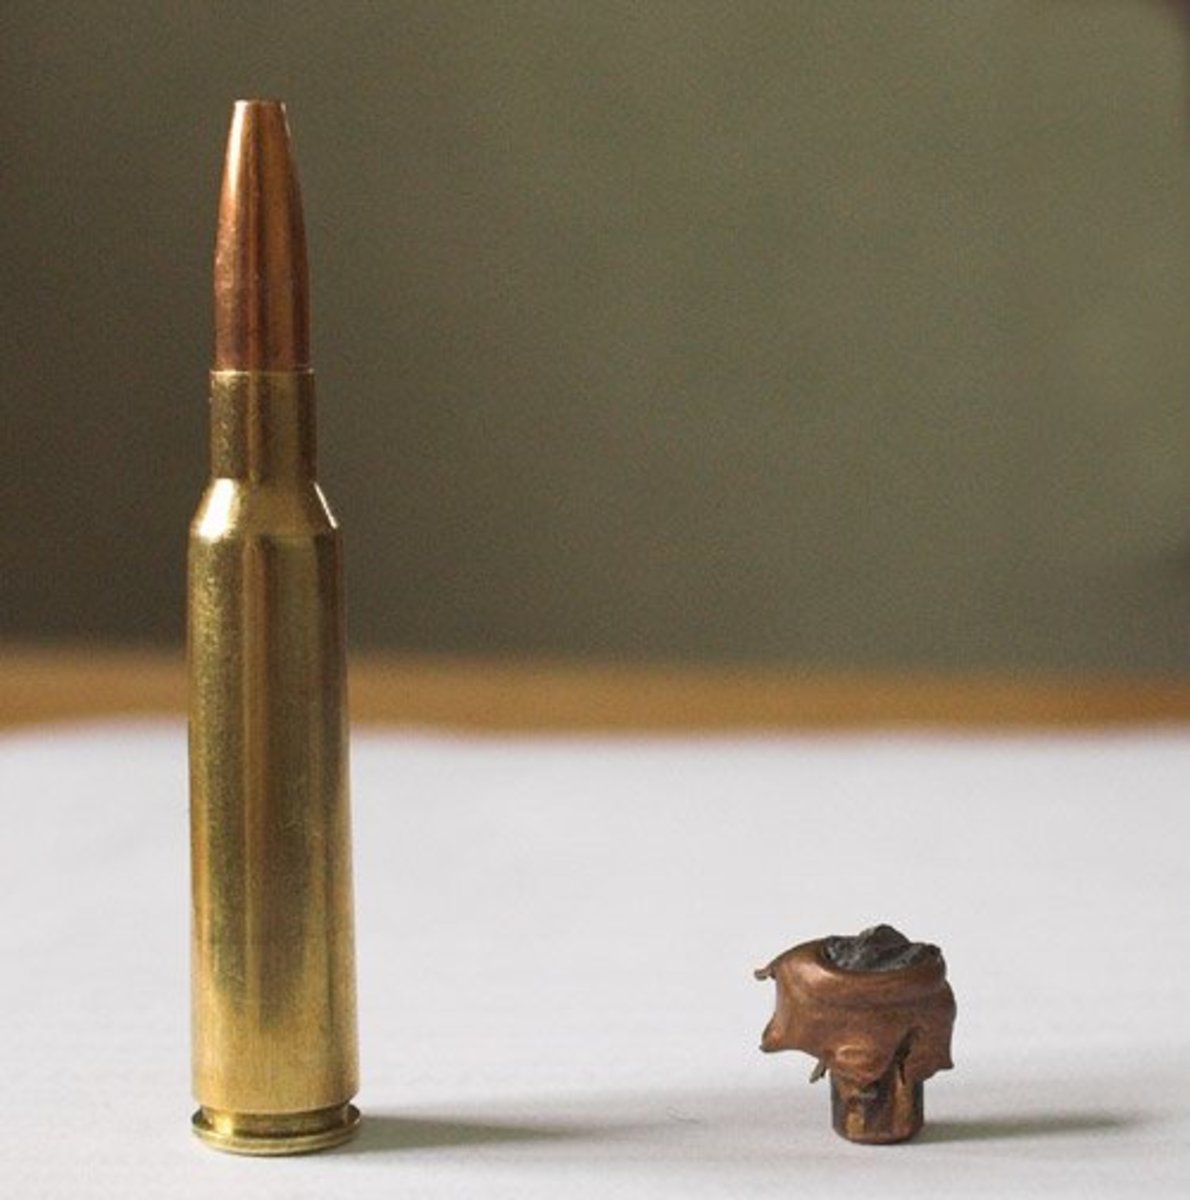 6.5mm Cartridge Virtual Shootout: Which is Best?